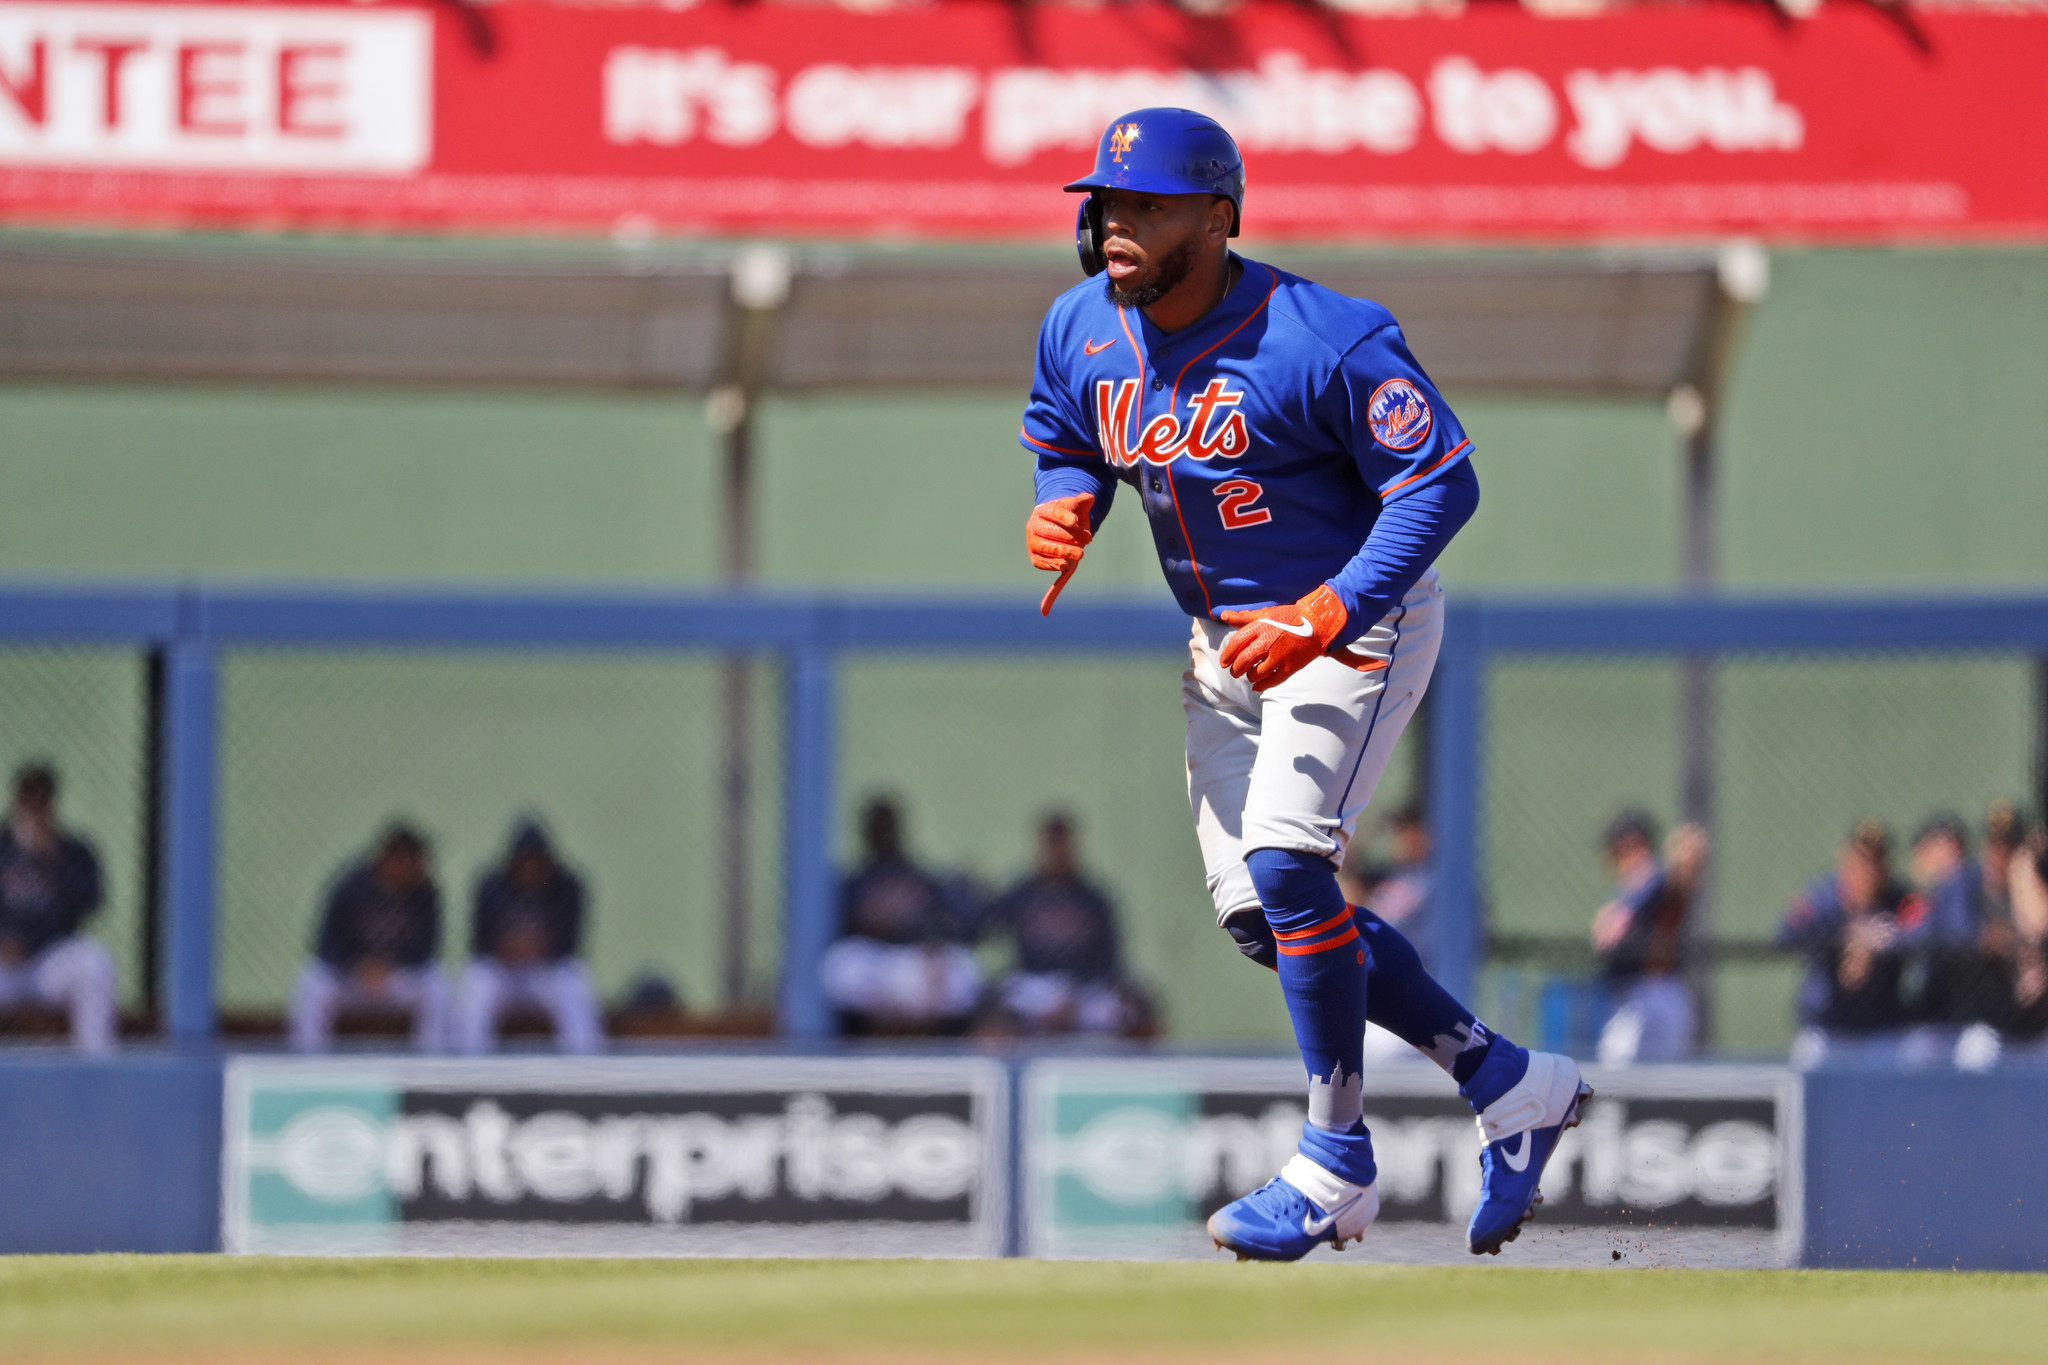 Dominic Smith is content with his unpredictable role for the Mets